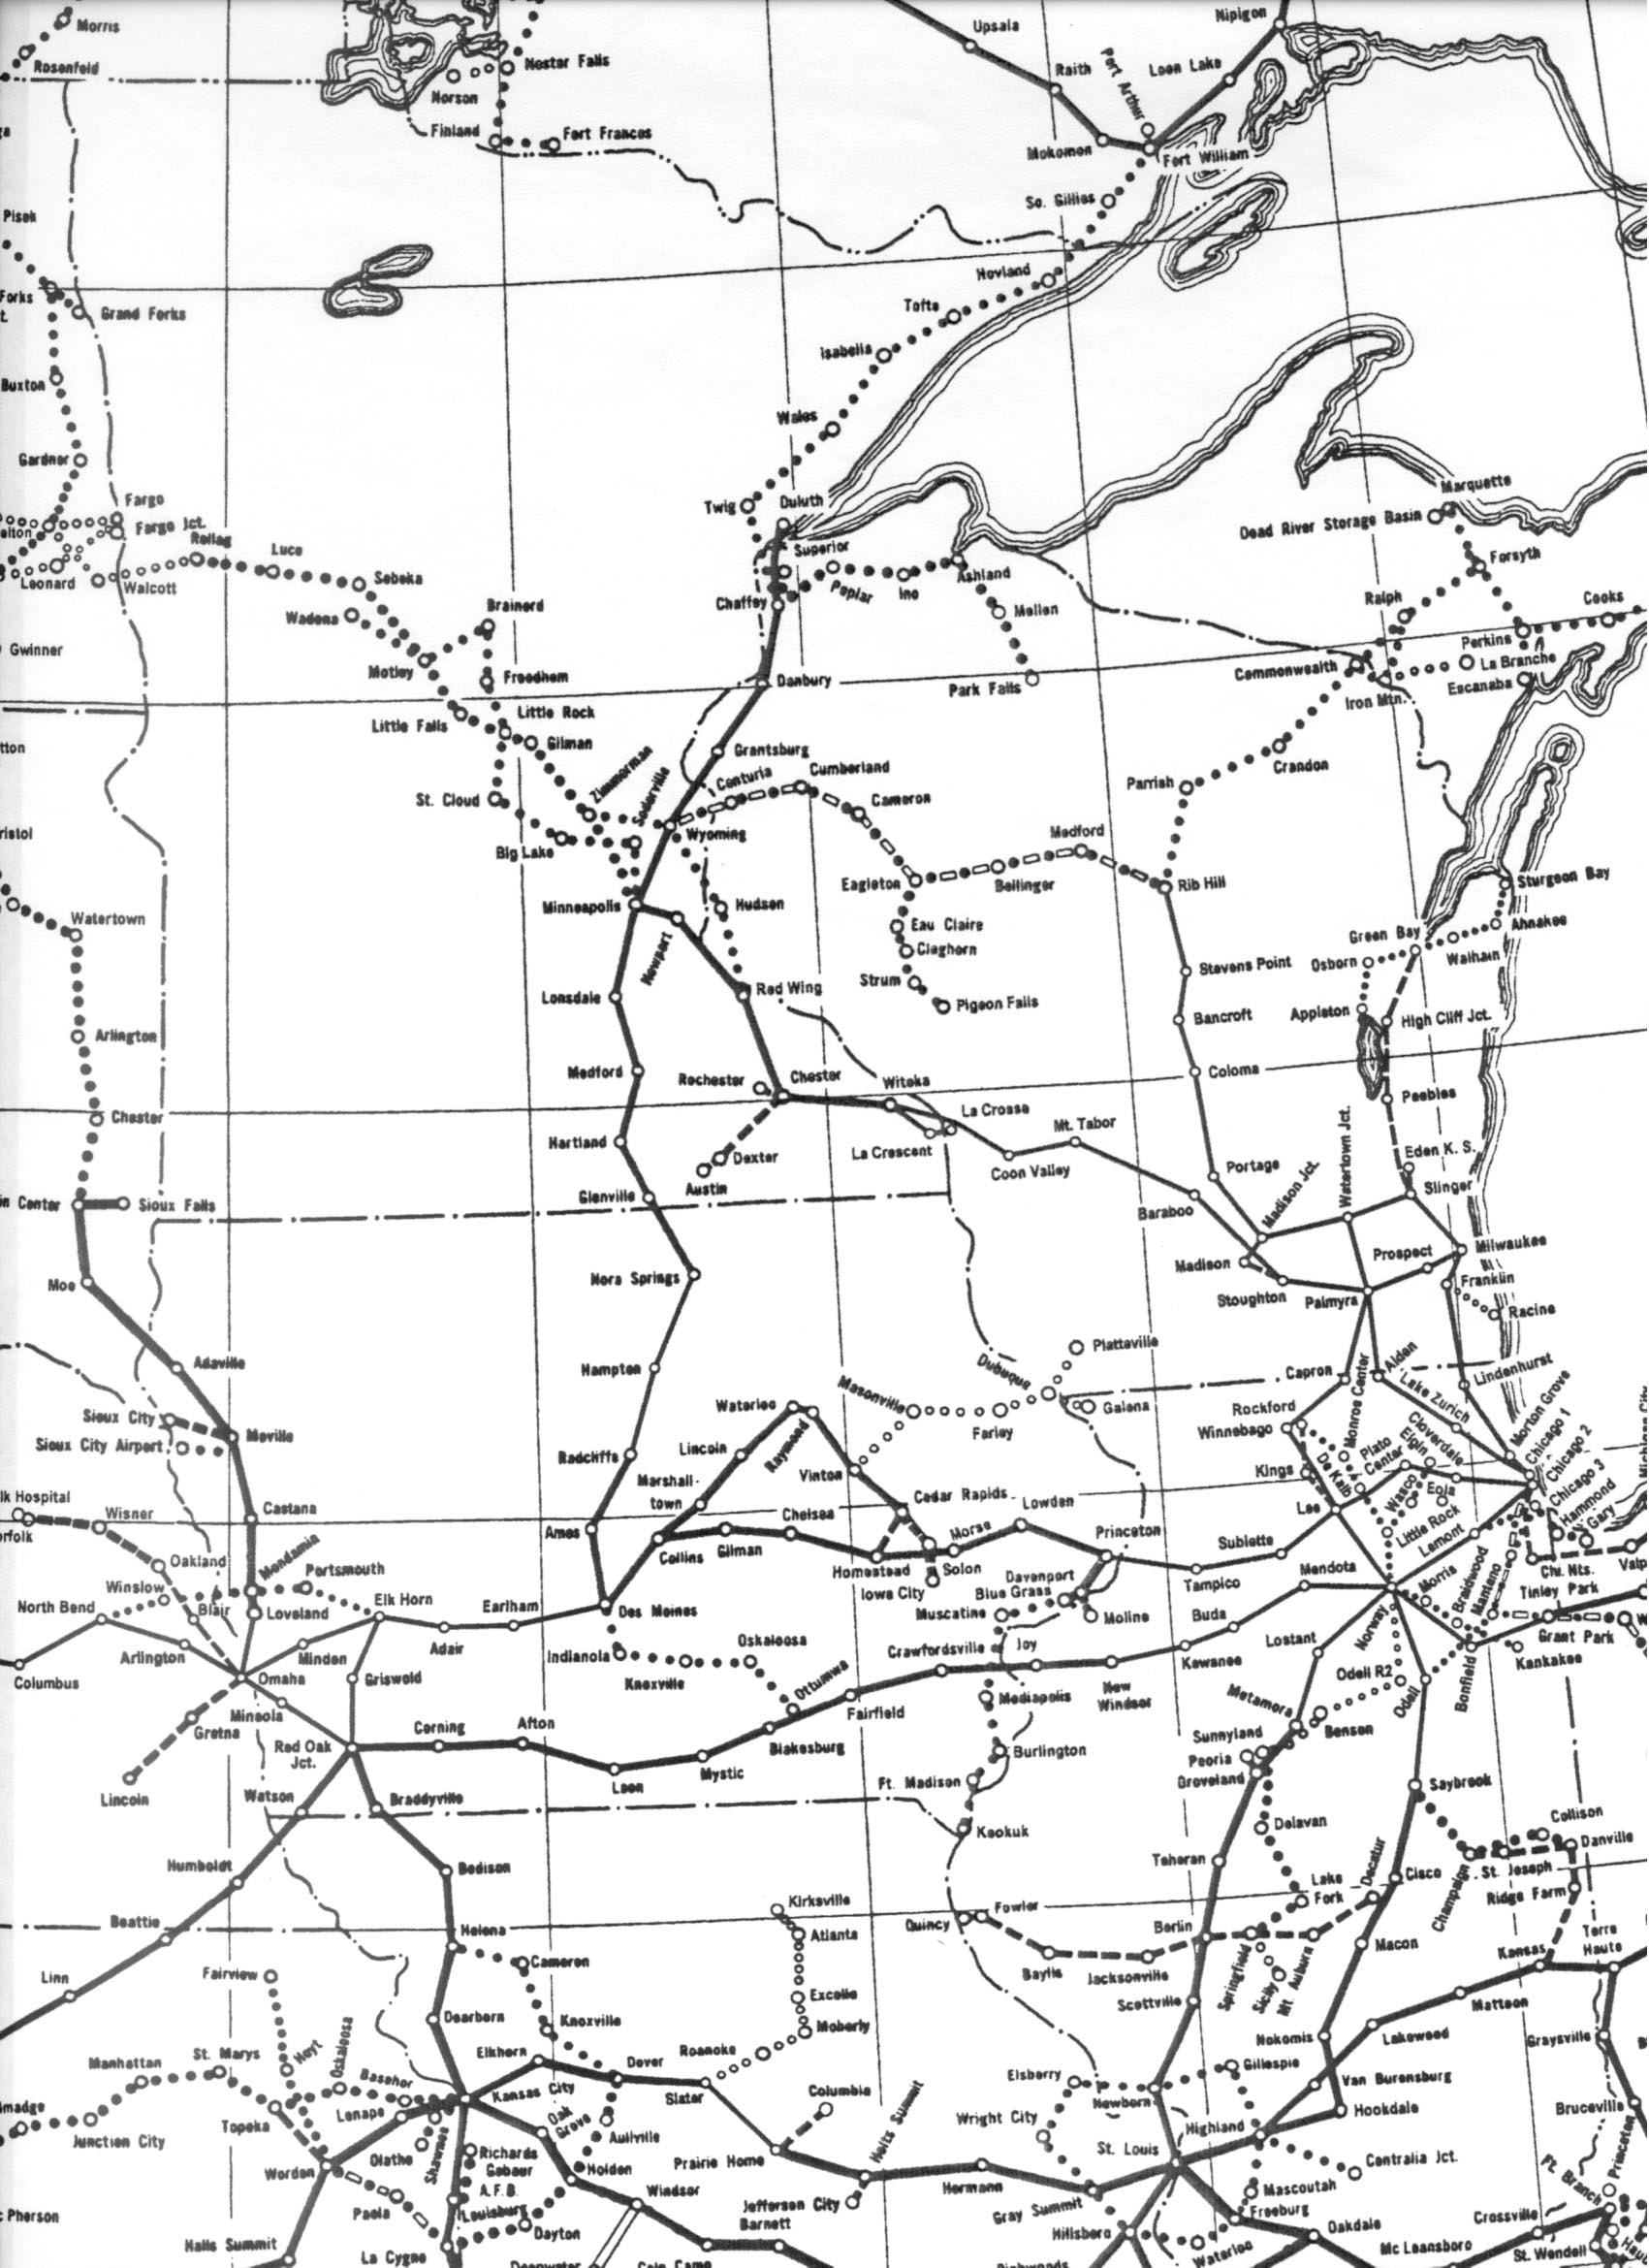 Detailed extract 1 minnesota wisconsin and surrounding areas incl chicago des moines and omaha